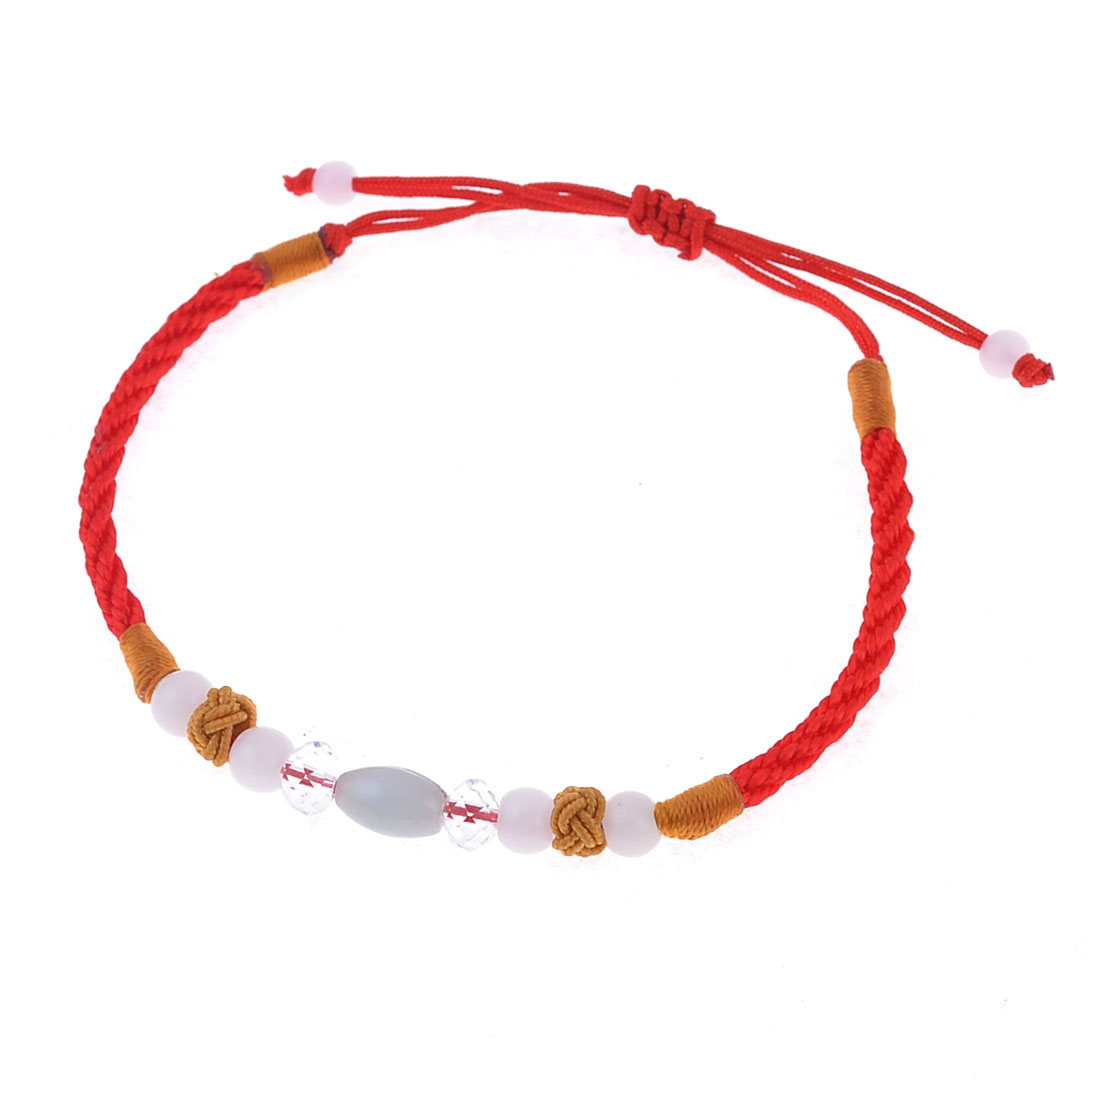 Lady Red Handmade Braided Rope Beads Plastic Faced Crystal Decor Pull String Wrist Bracelet